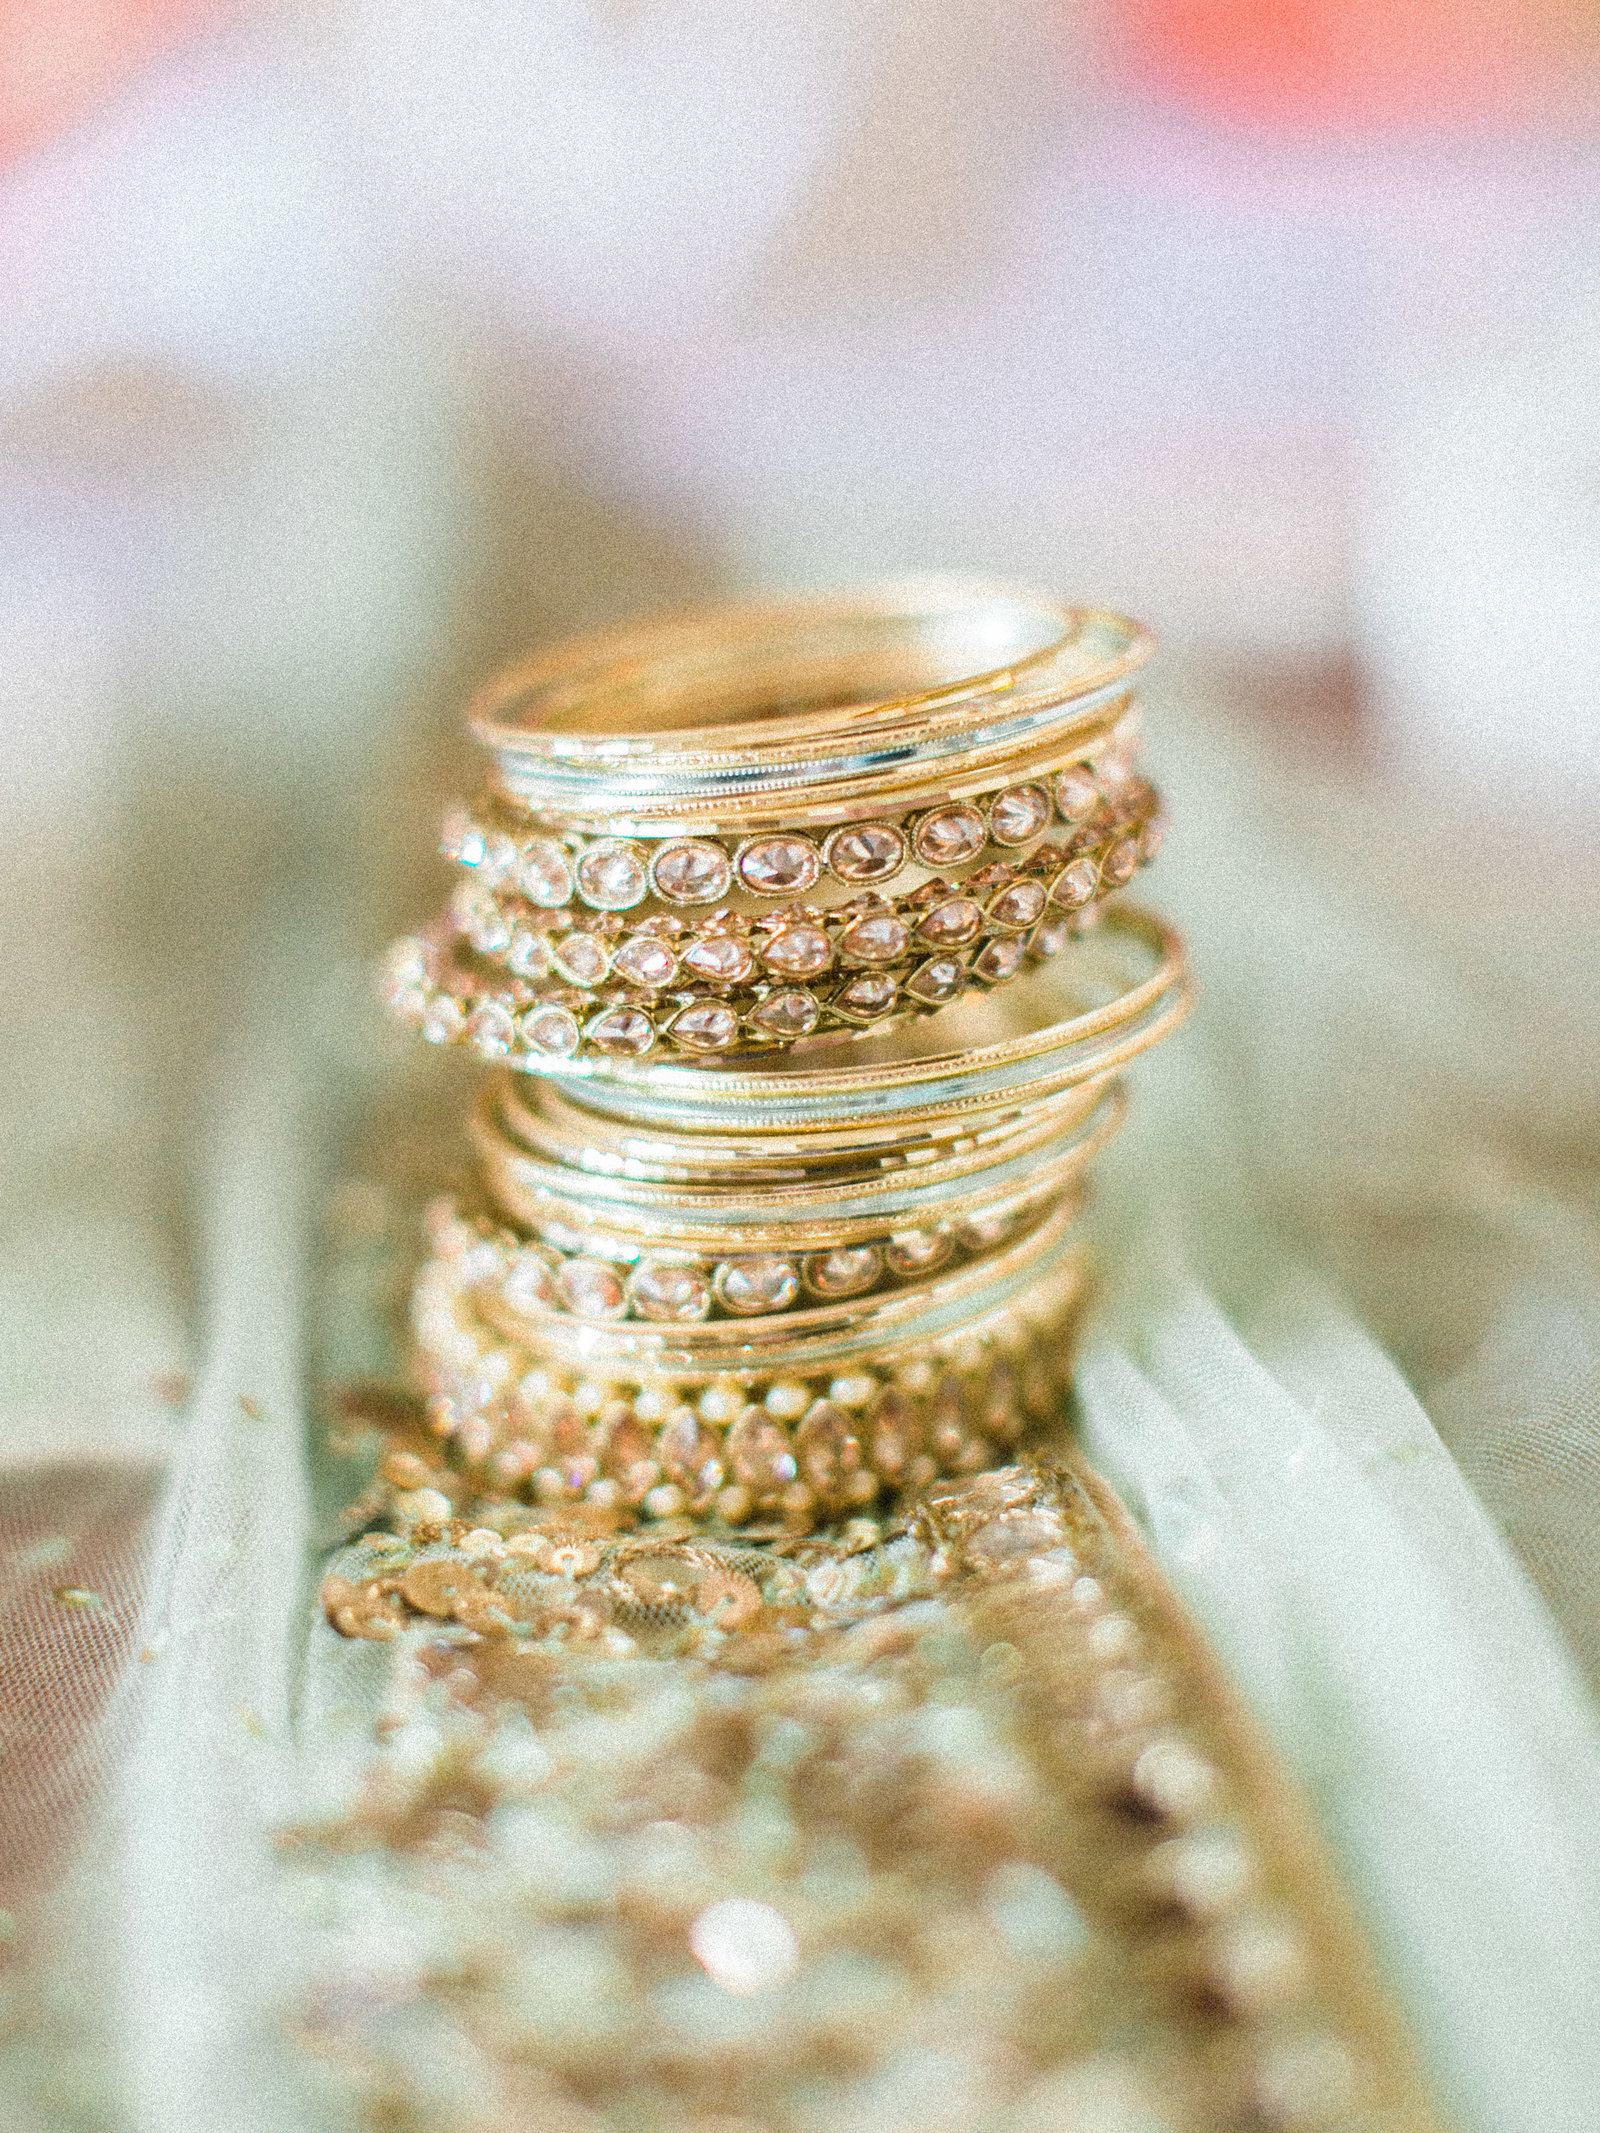 Christa O'Brien Photography Georgia Wedding photographer fine art film  atlanta nyc american indian wedding bangles bracelets